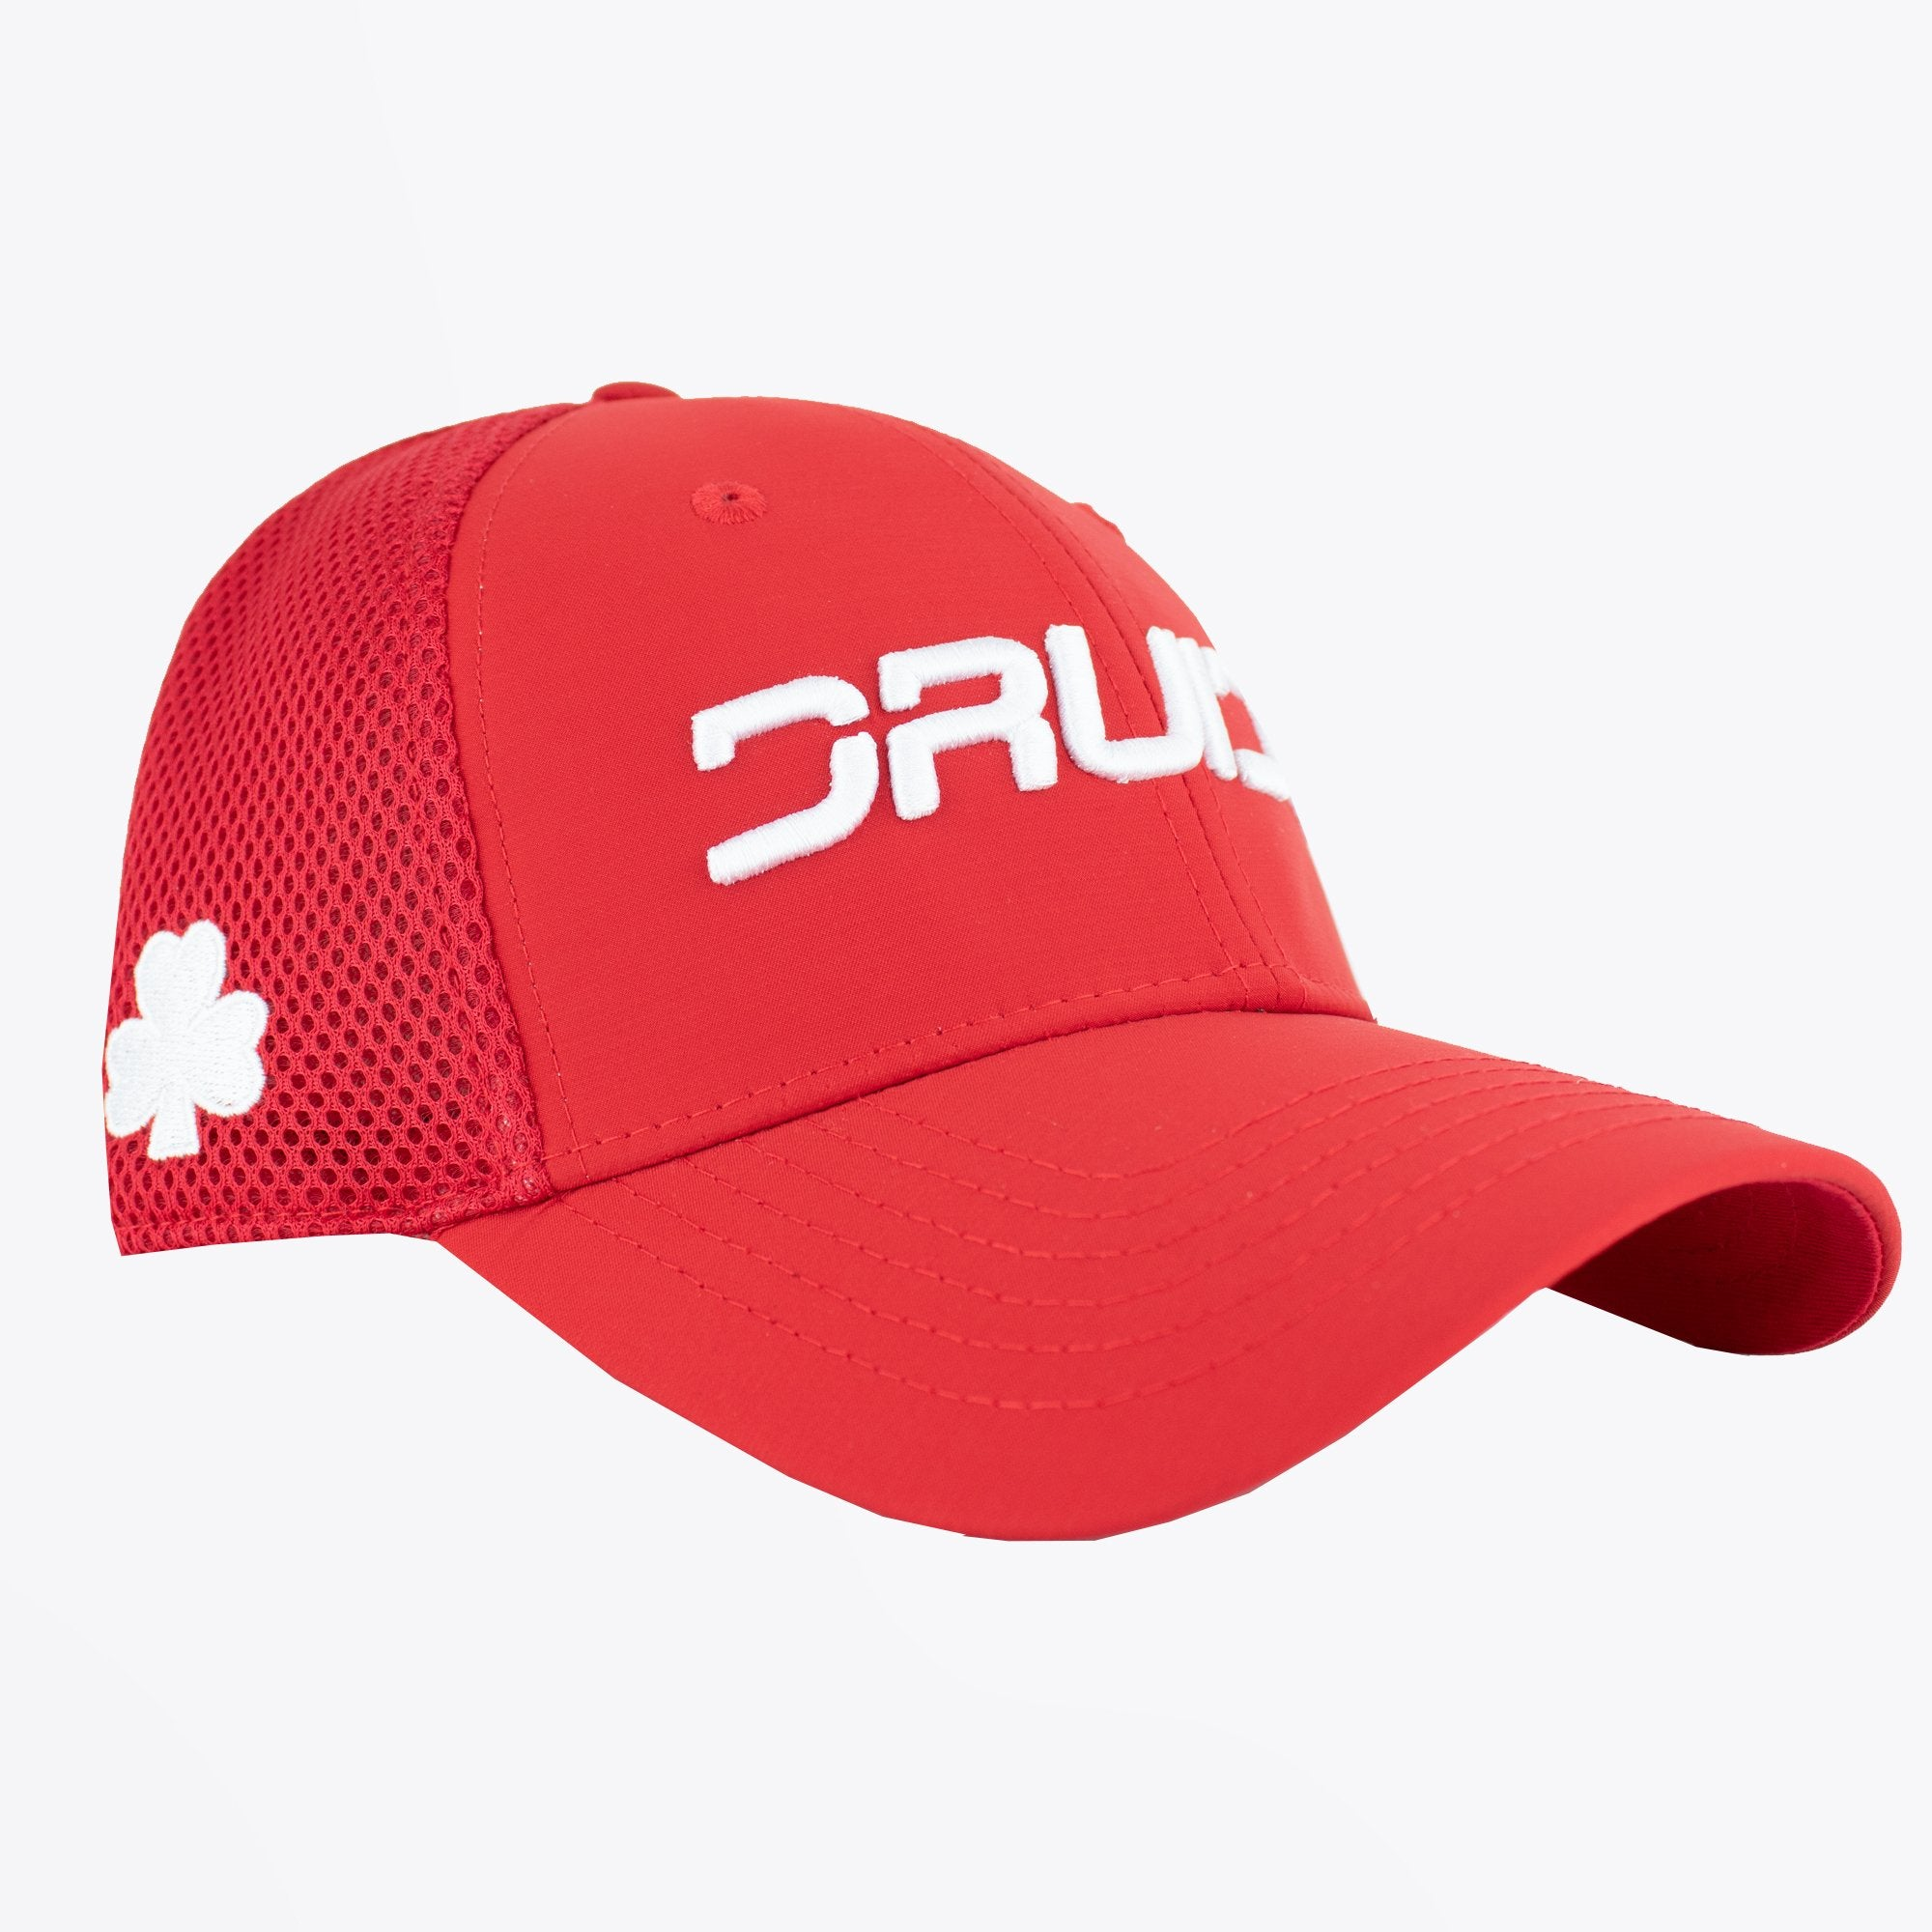 Druids Golf - Mesh Cap Red (Druids)